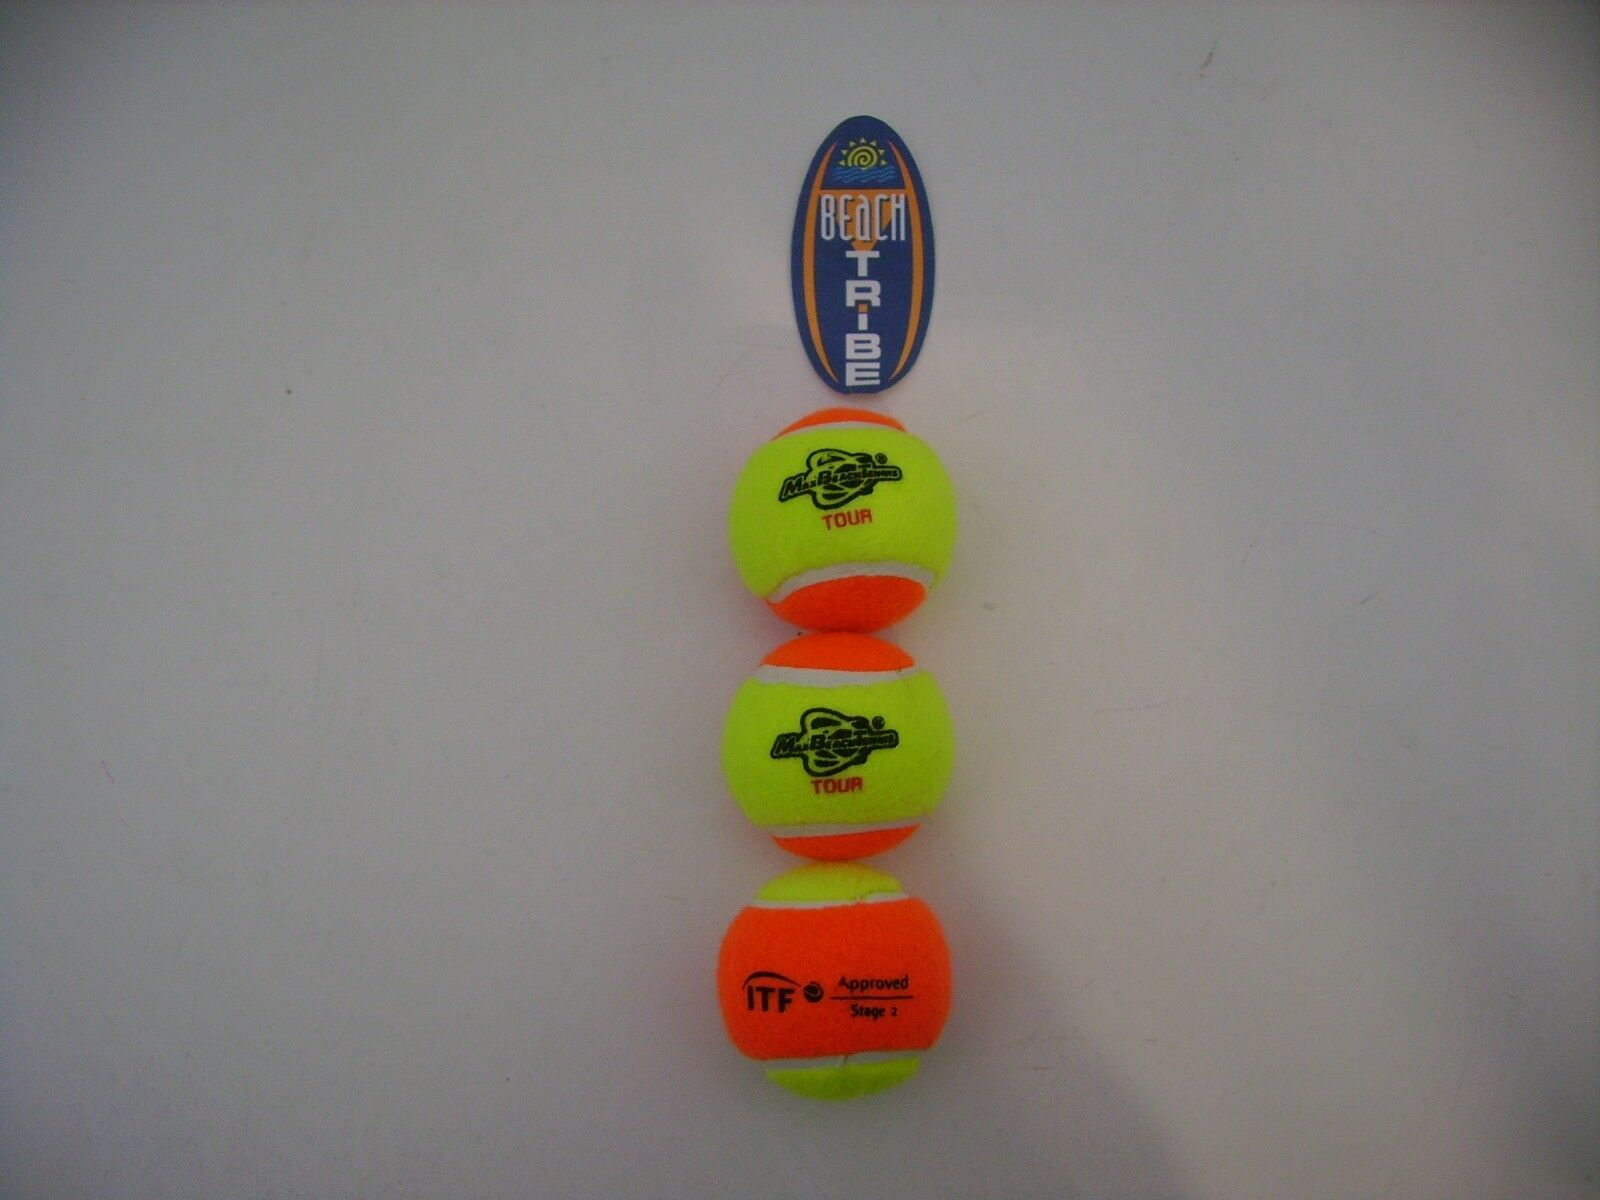 20 Palline Balls Beach Tennis MBT Tour yellow Arancione ITF Approved Stage 2